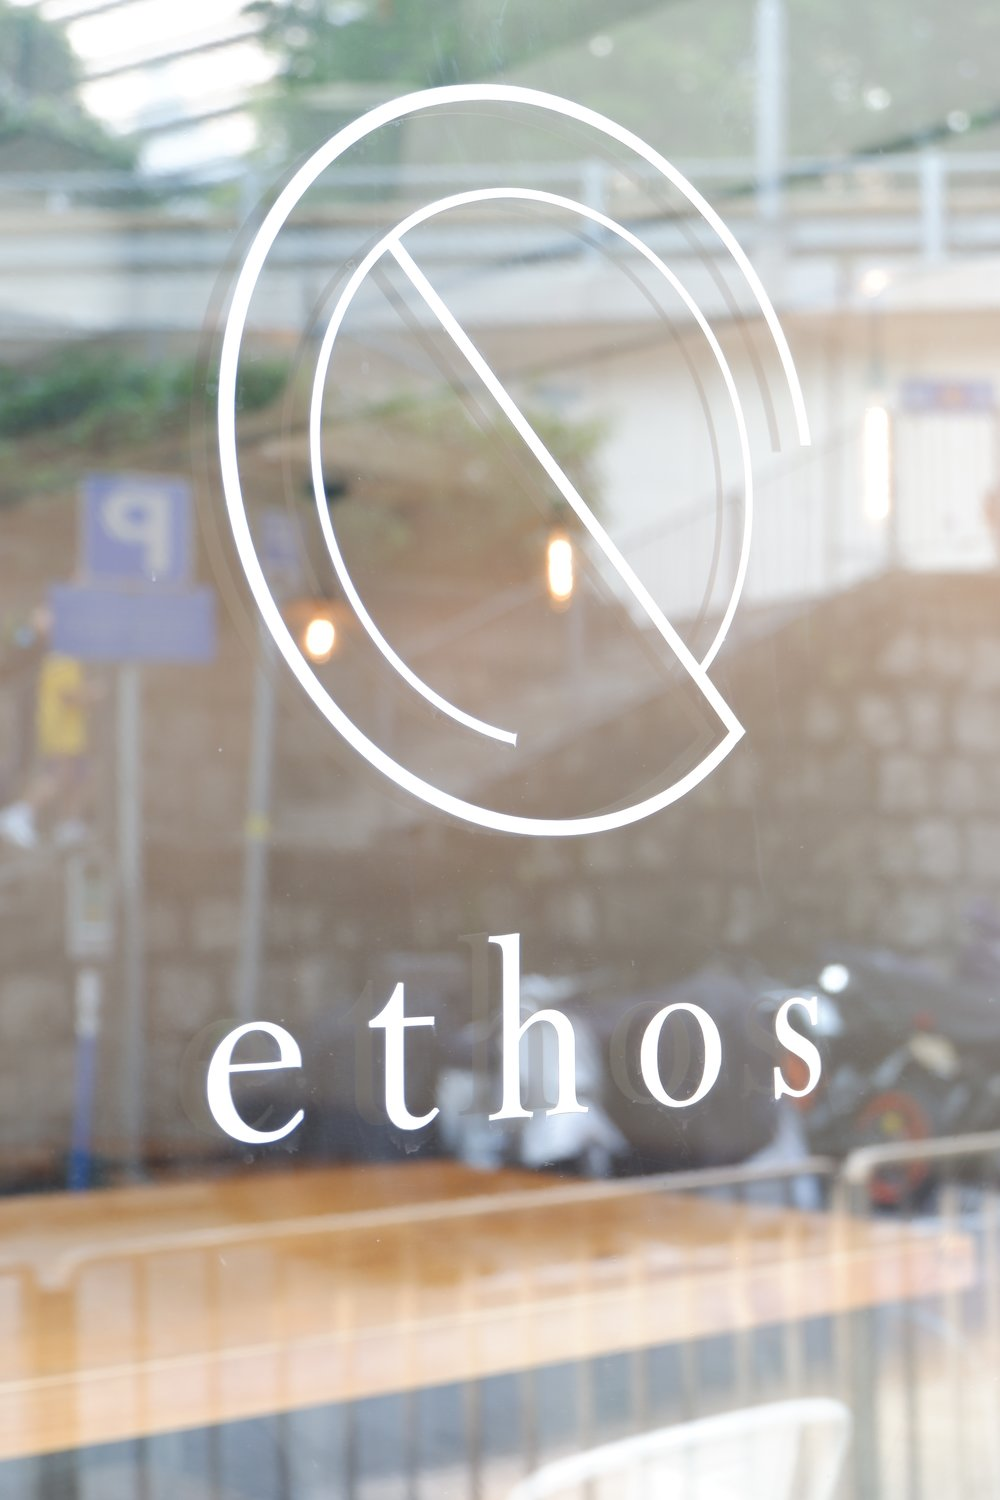 ethos-logo-design-on-glass